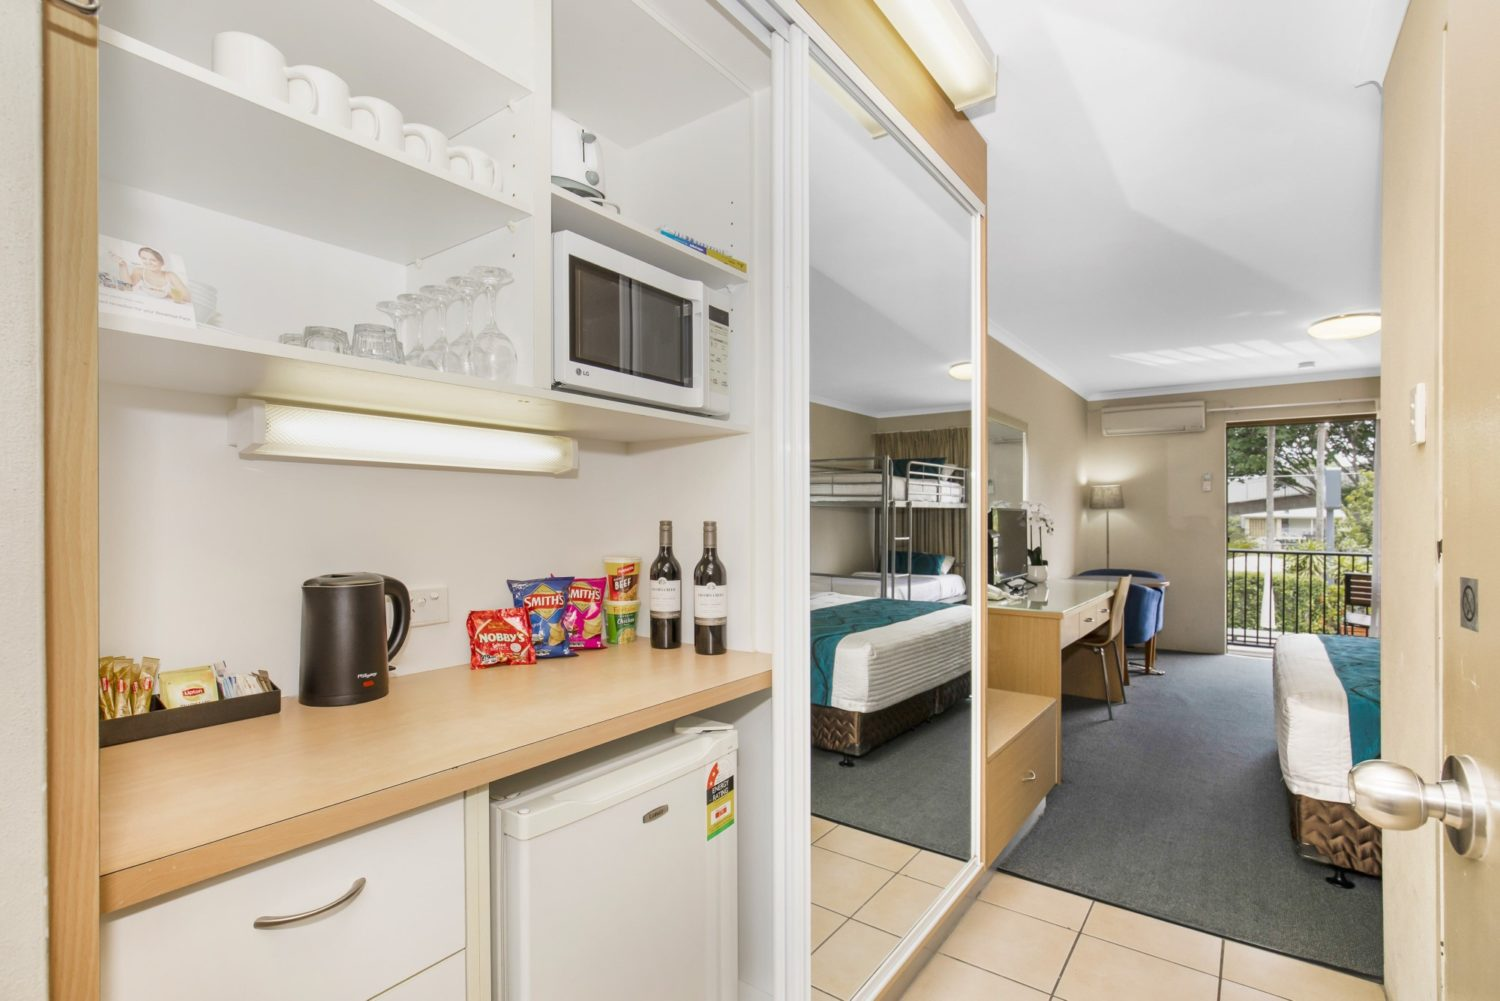 Brisbane-Airport-Motel-85 accommodation (4)